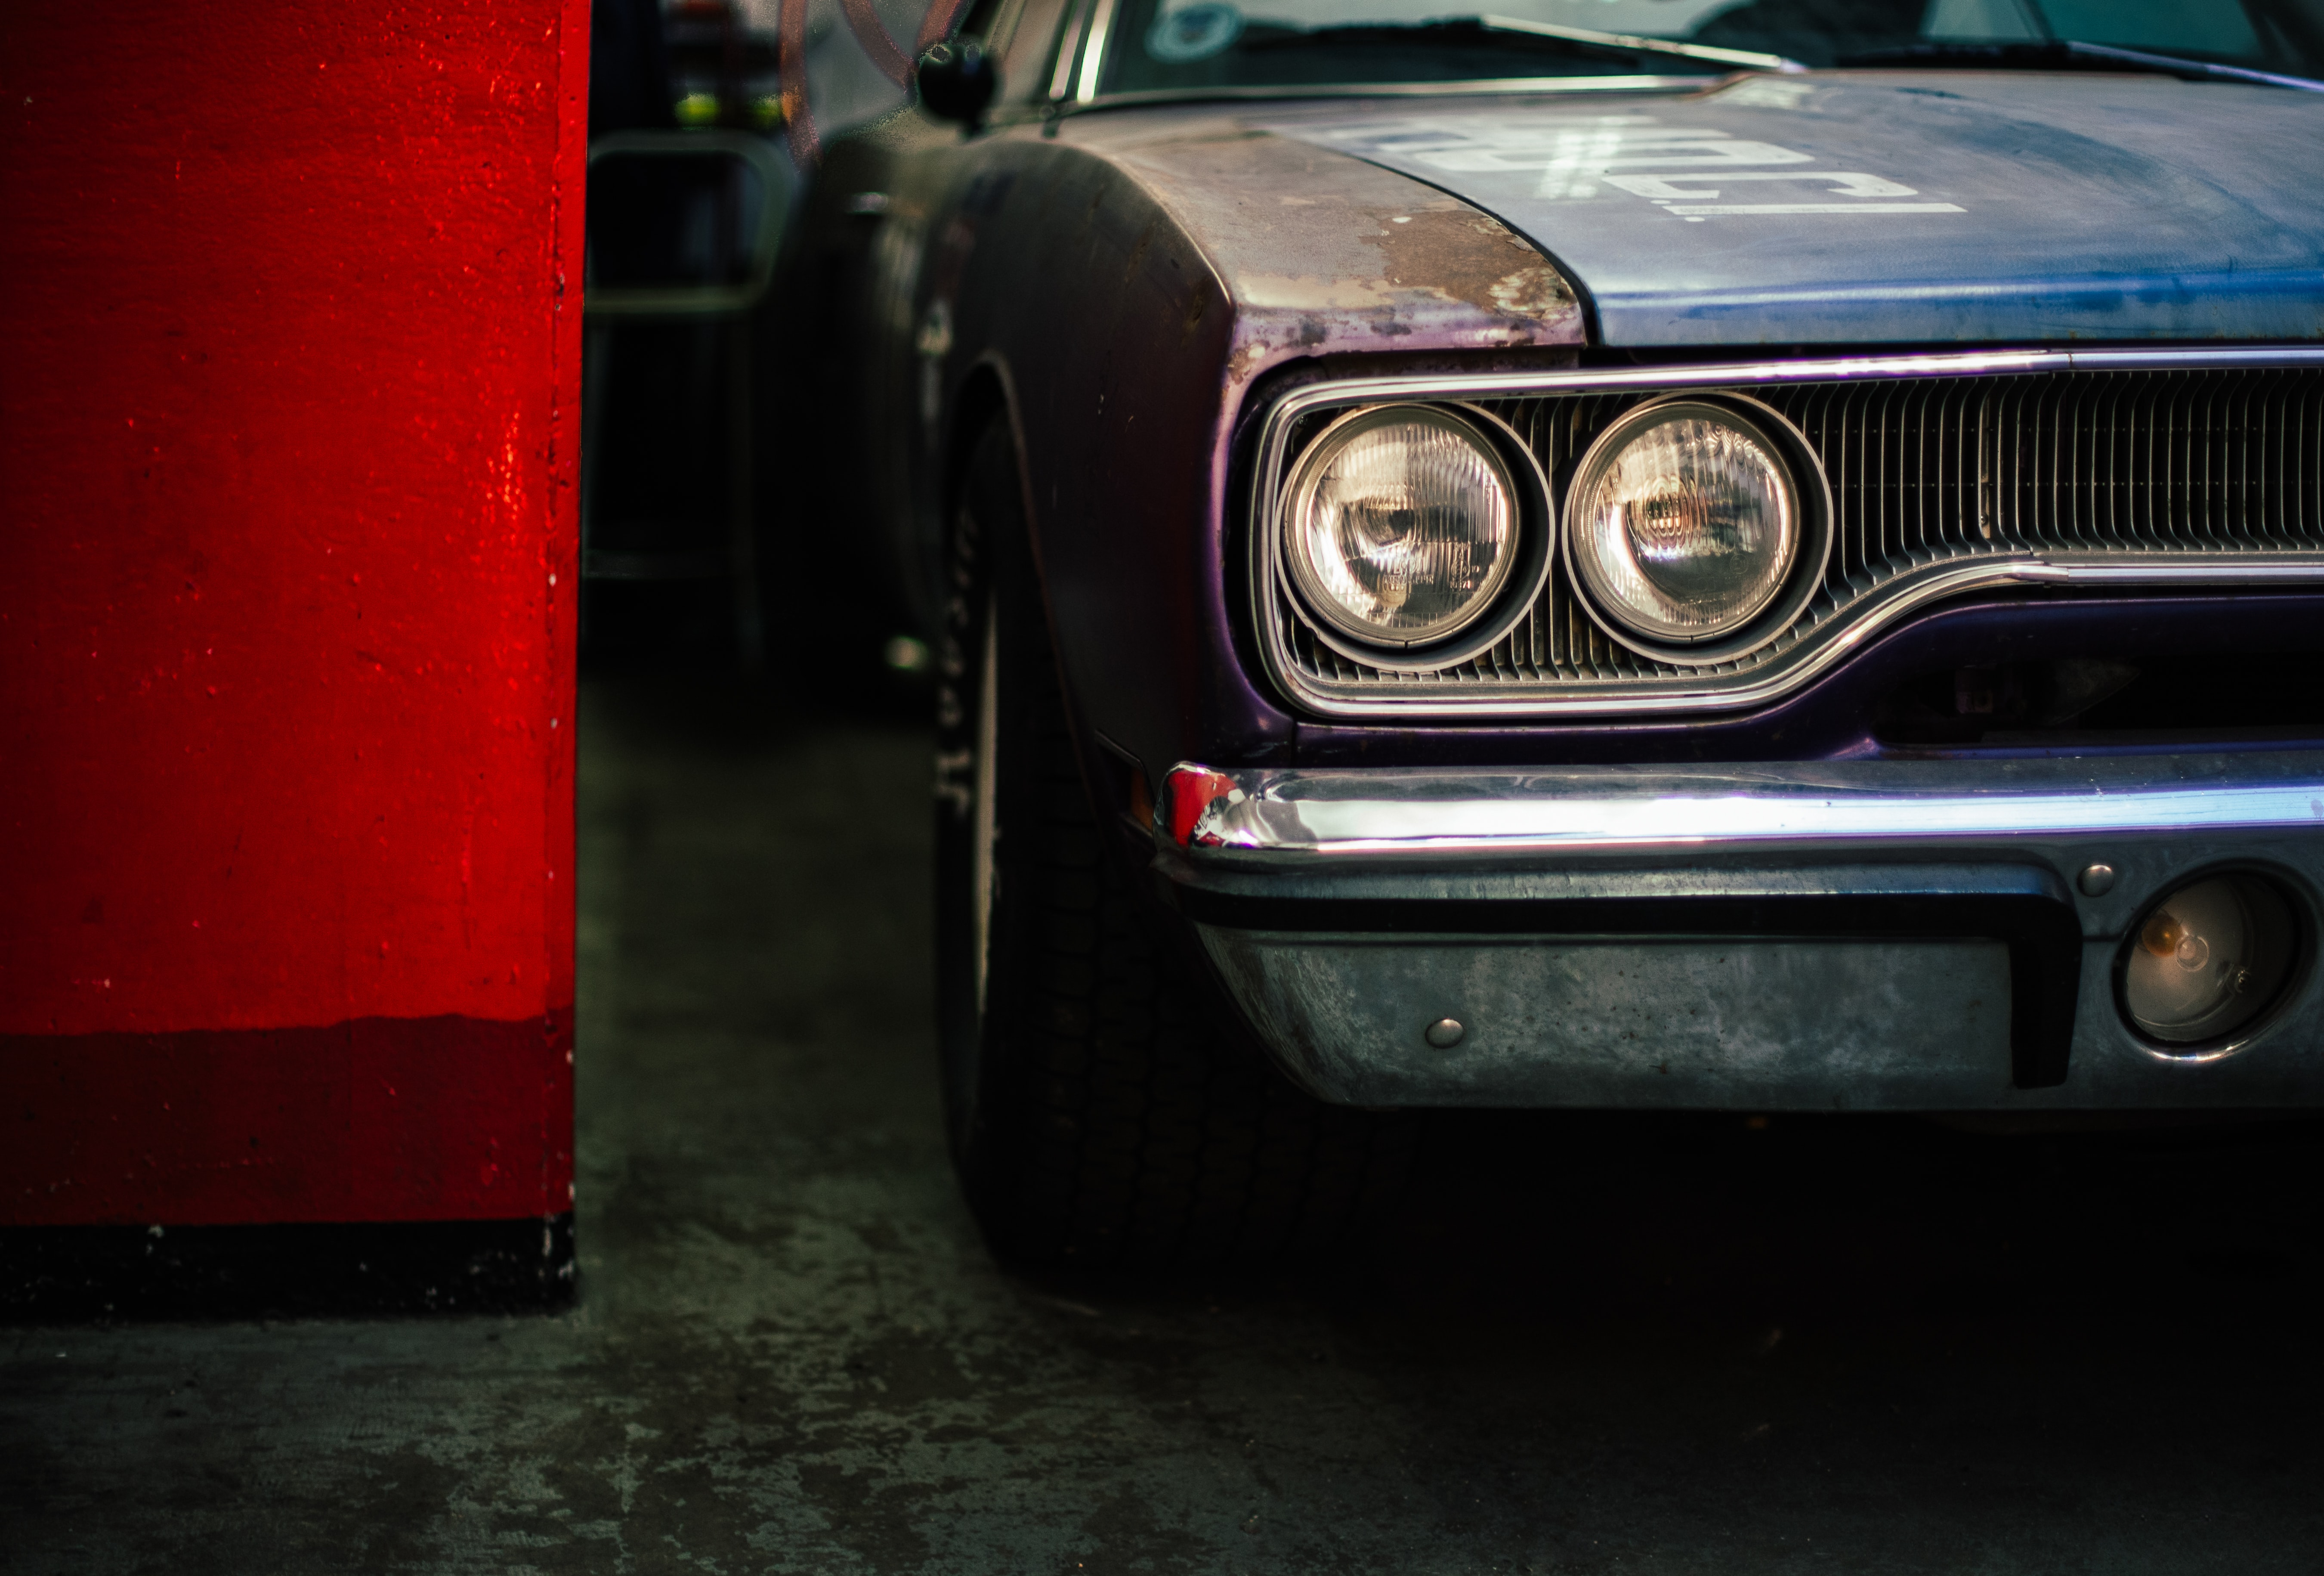 An old, rusted car beside a red wall in a garage